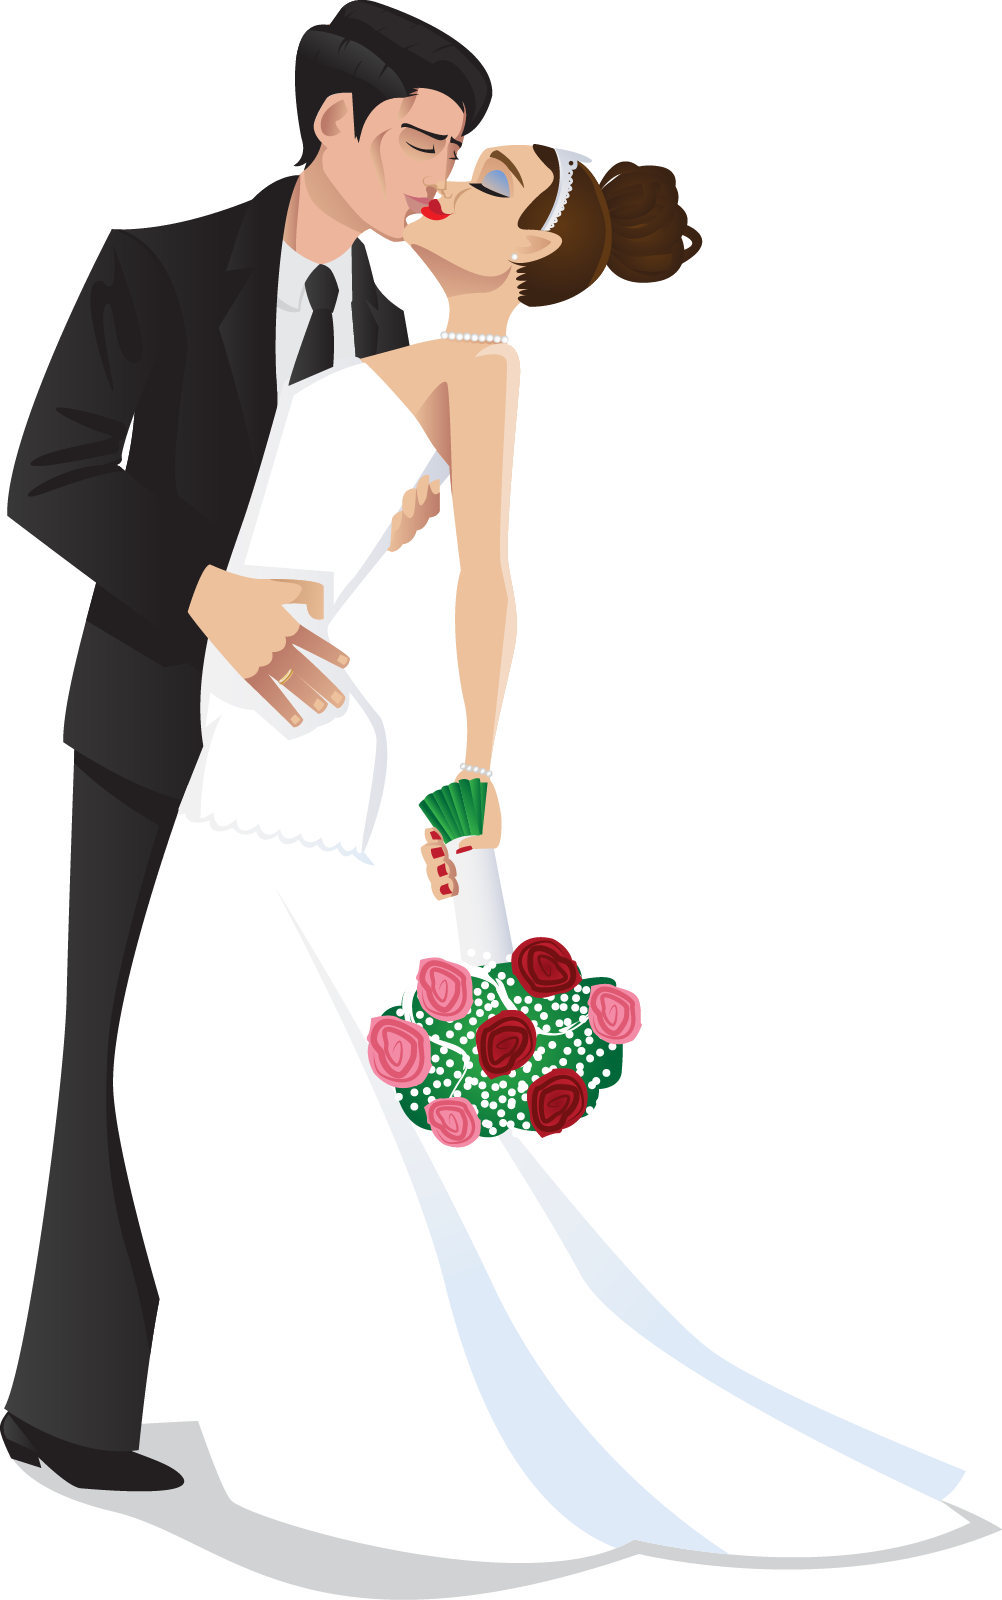 Prom clipart bride groom dance. Free dancing cliparts download